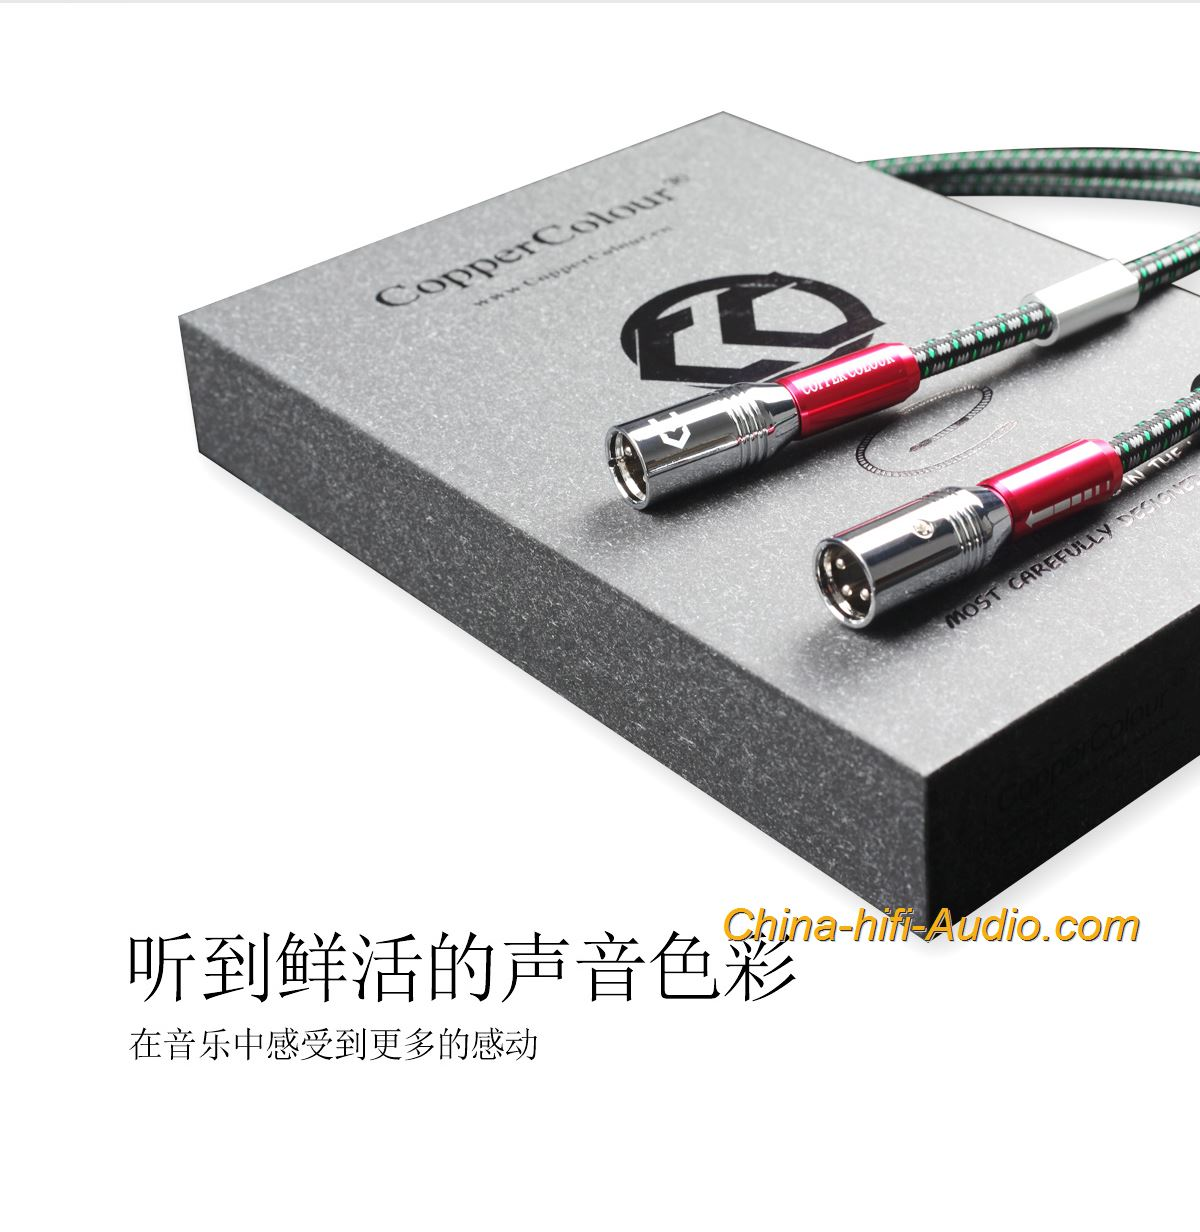 Copper Colour Audiophile Cable Cc Cords China Hifi Audio Online Conductor Electric Wire Fond Iii Xlr